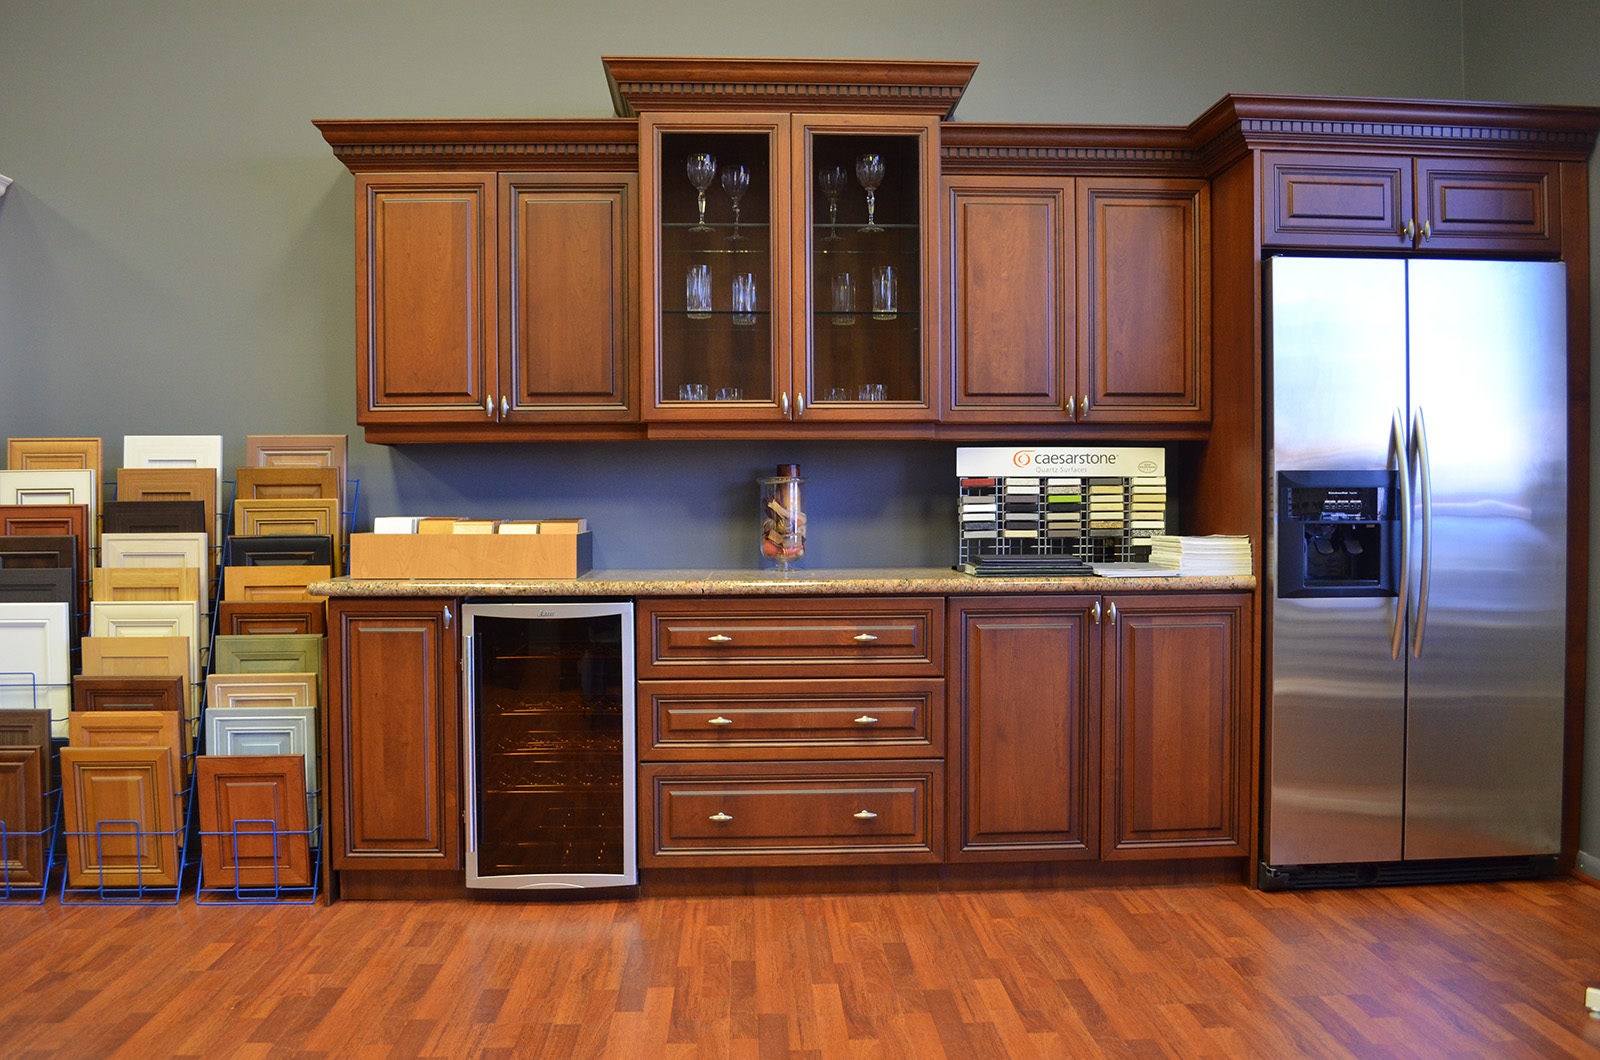 Kitchen cabinet refacing boston - Kitchen Cabinet Refacing Is The Perfect Way To Get The Look Of New Cabinets Without Investing In A Total Cabinetry Replacement And When Youu0027re Looking